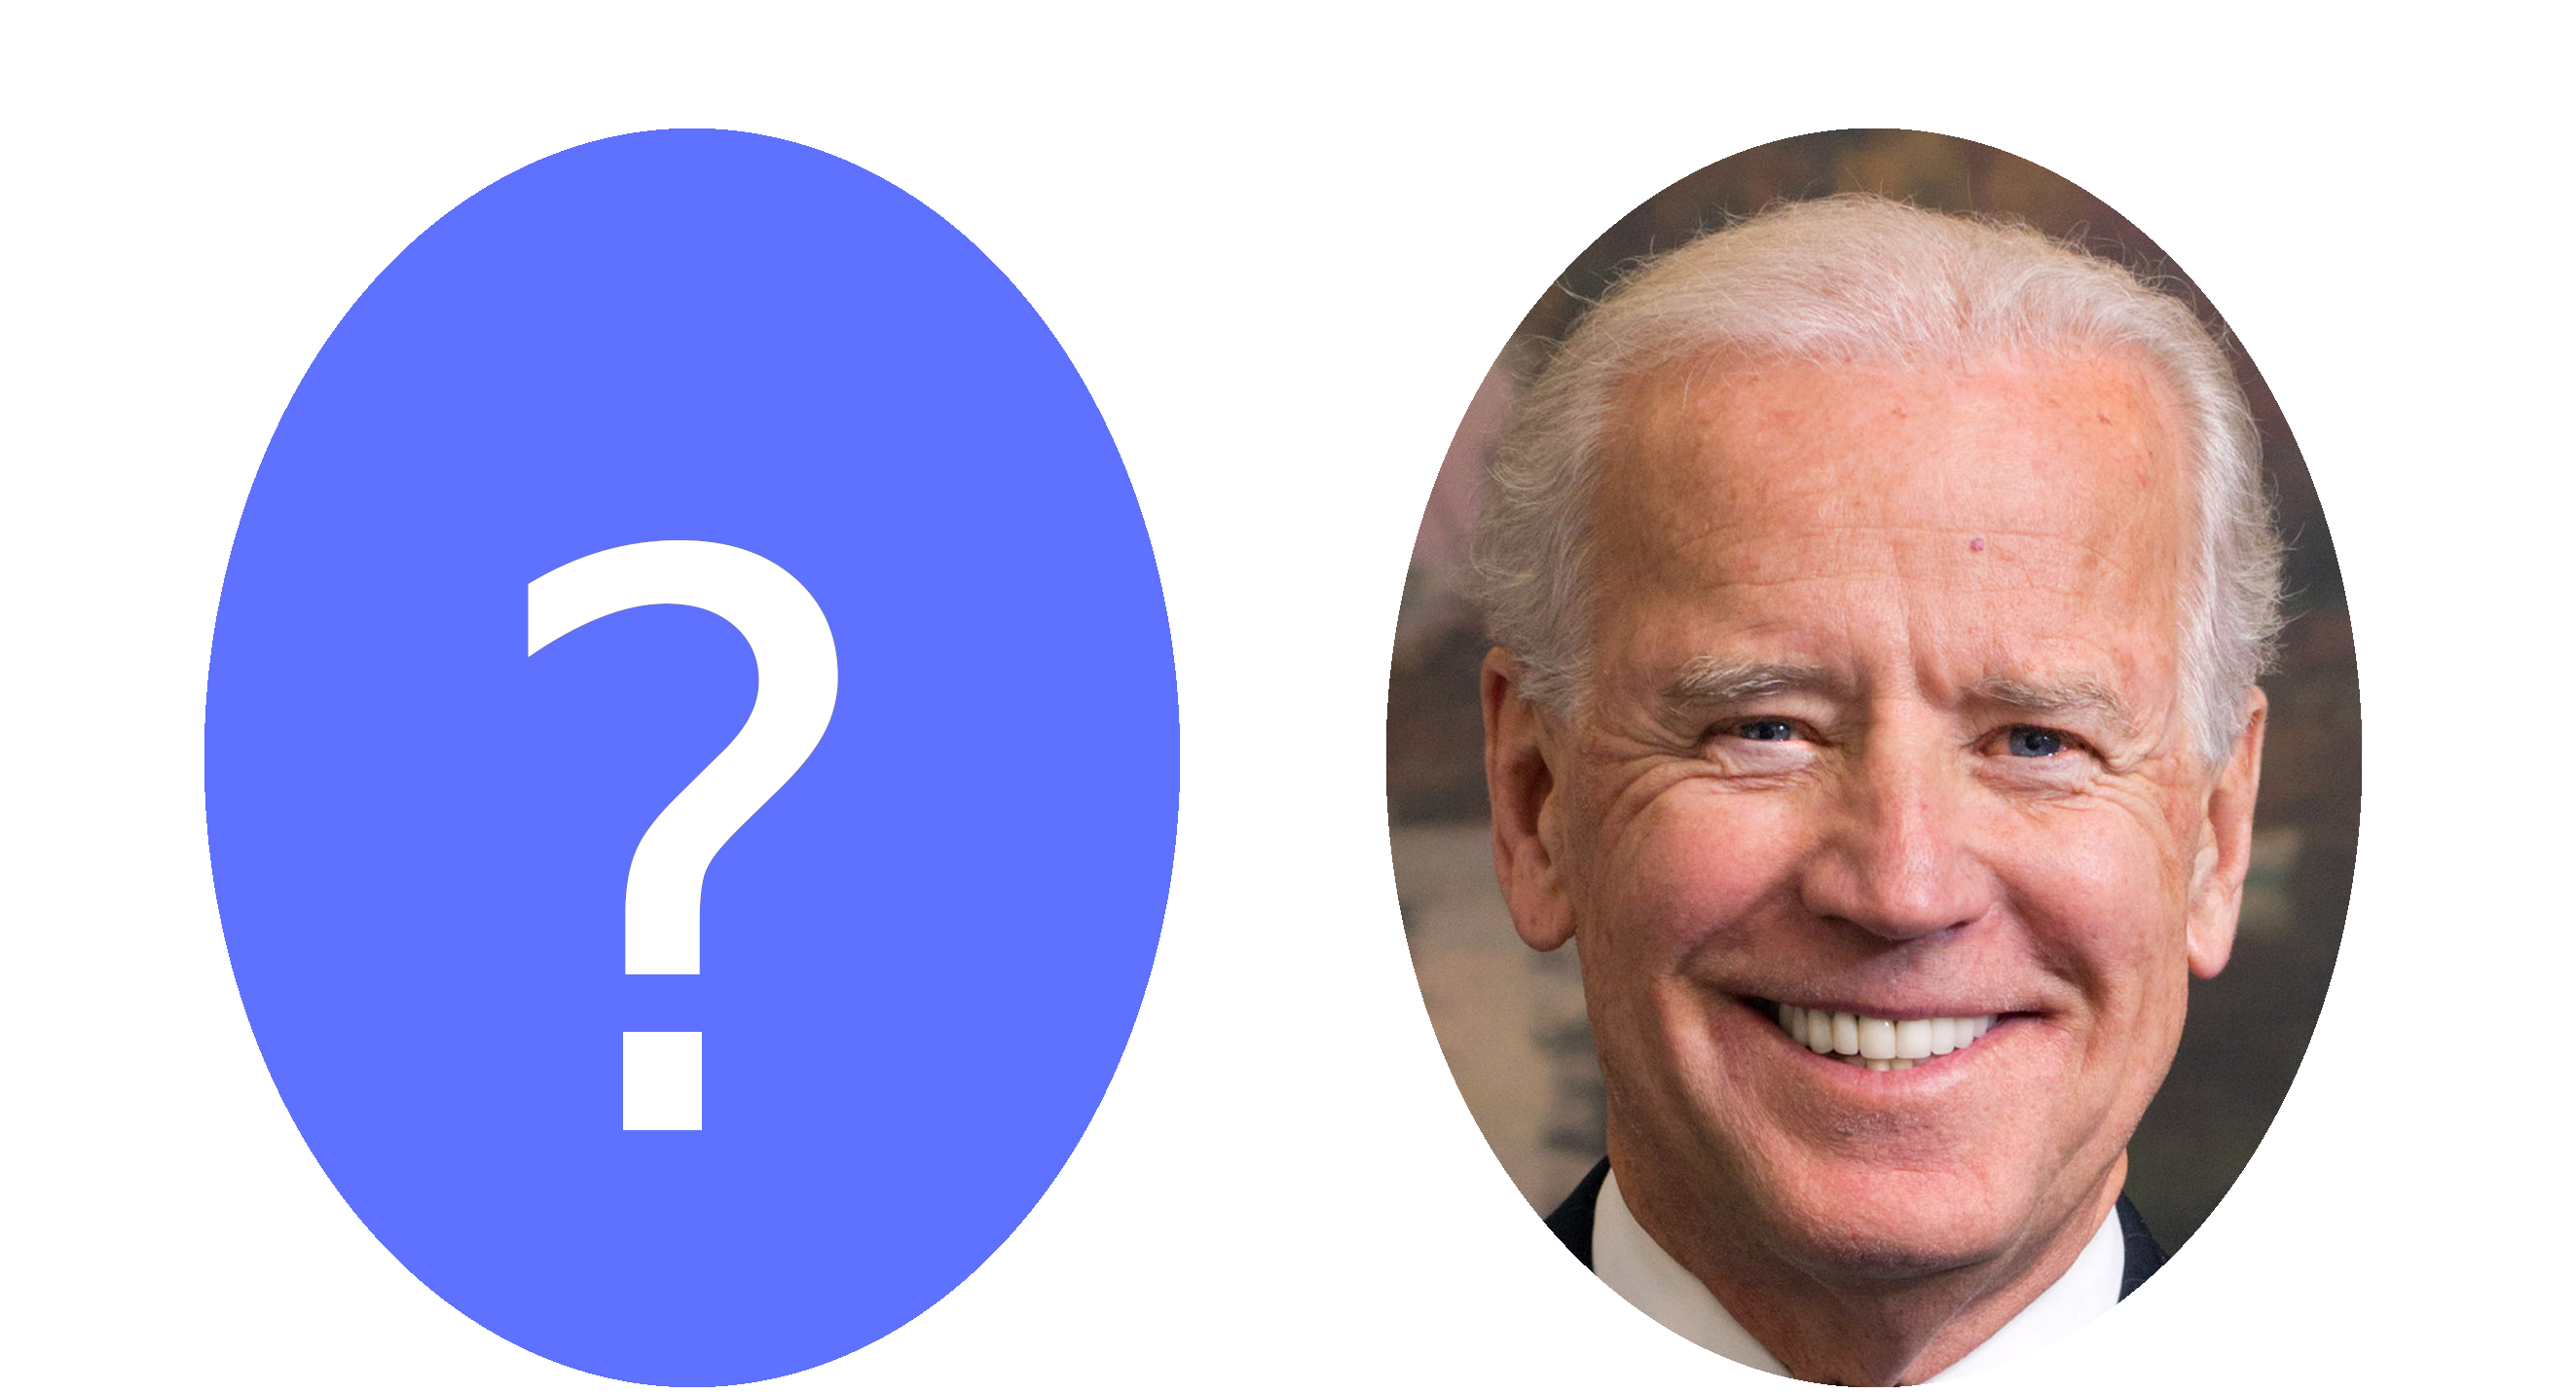 Picture of Biden next to an empty question mark.